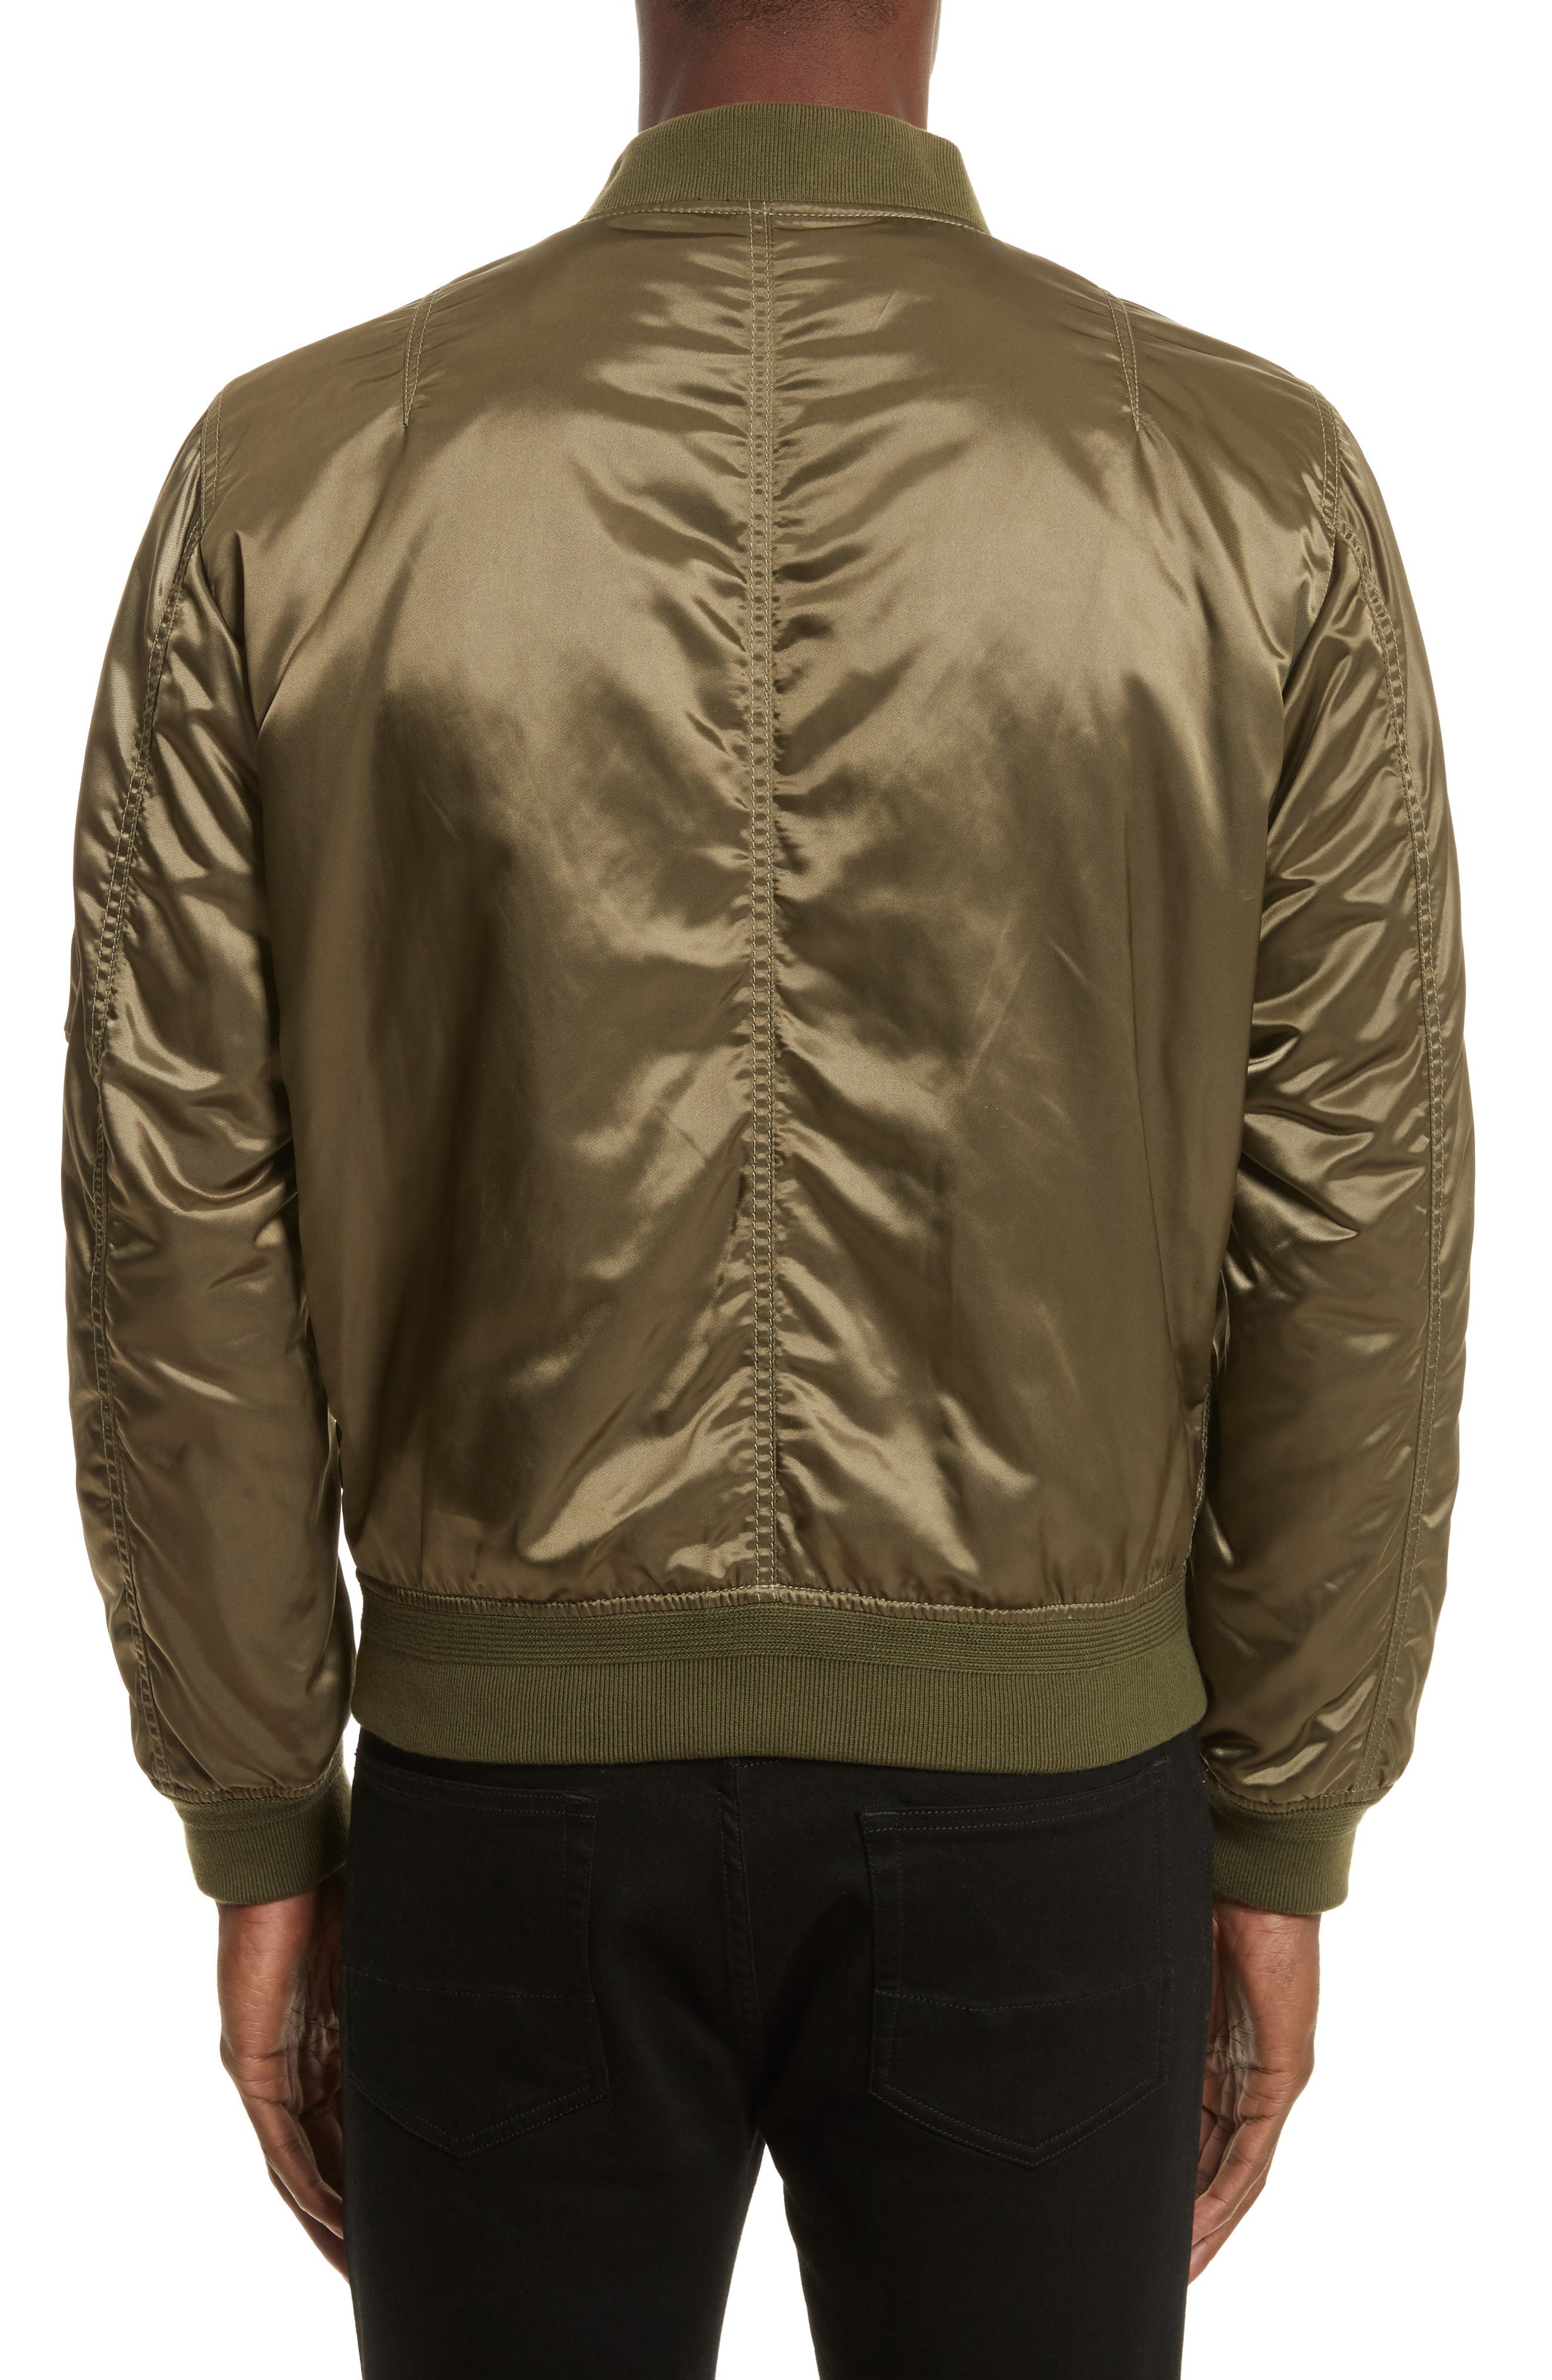 Washburn Bomber Jacket,                             Alternate thumbnail 2, color,                             330